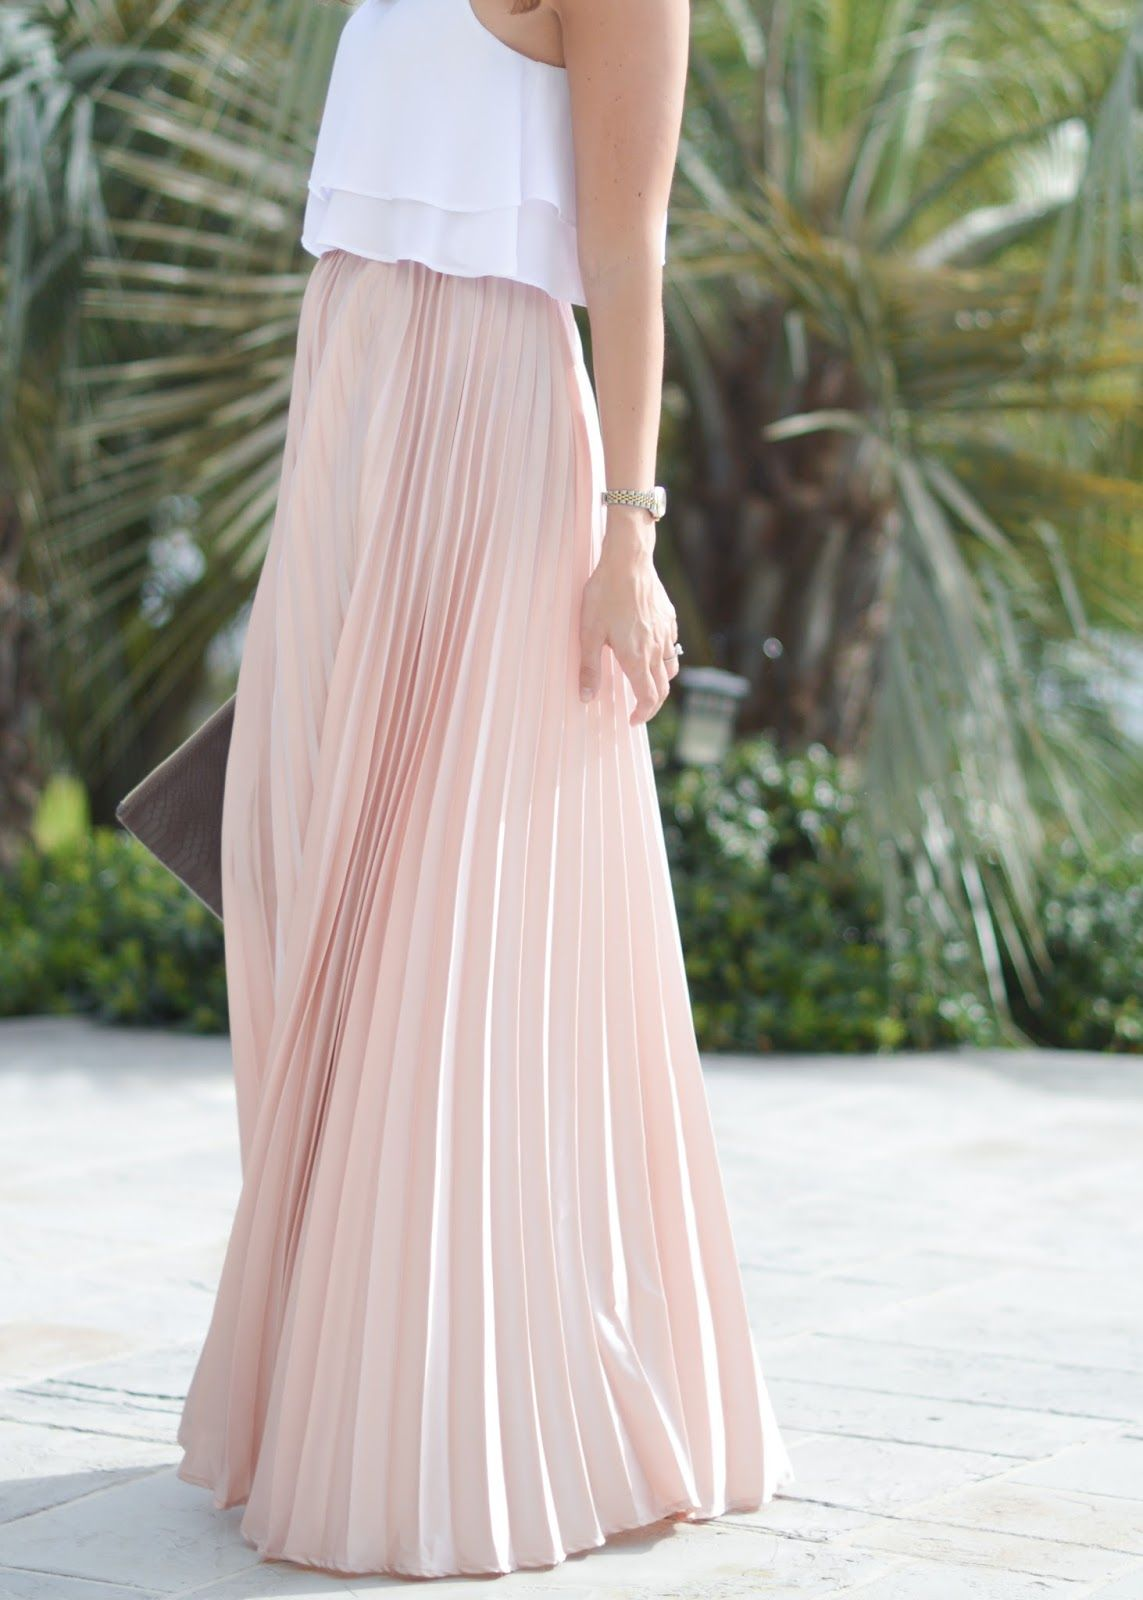 Maxi Skirt Outfits for Wedding